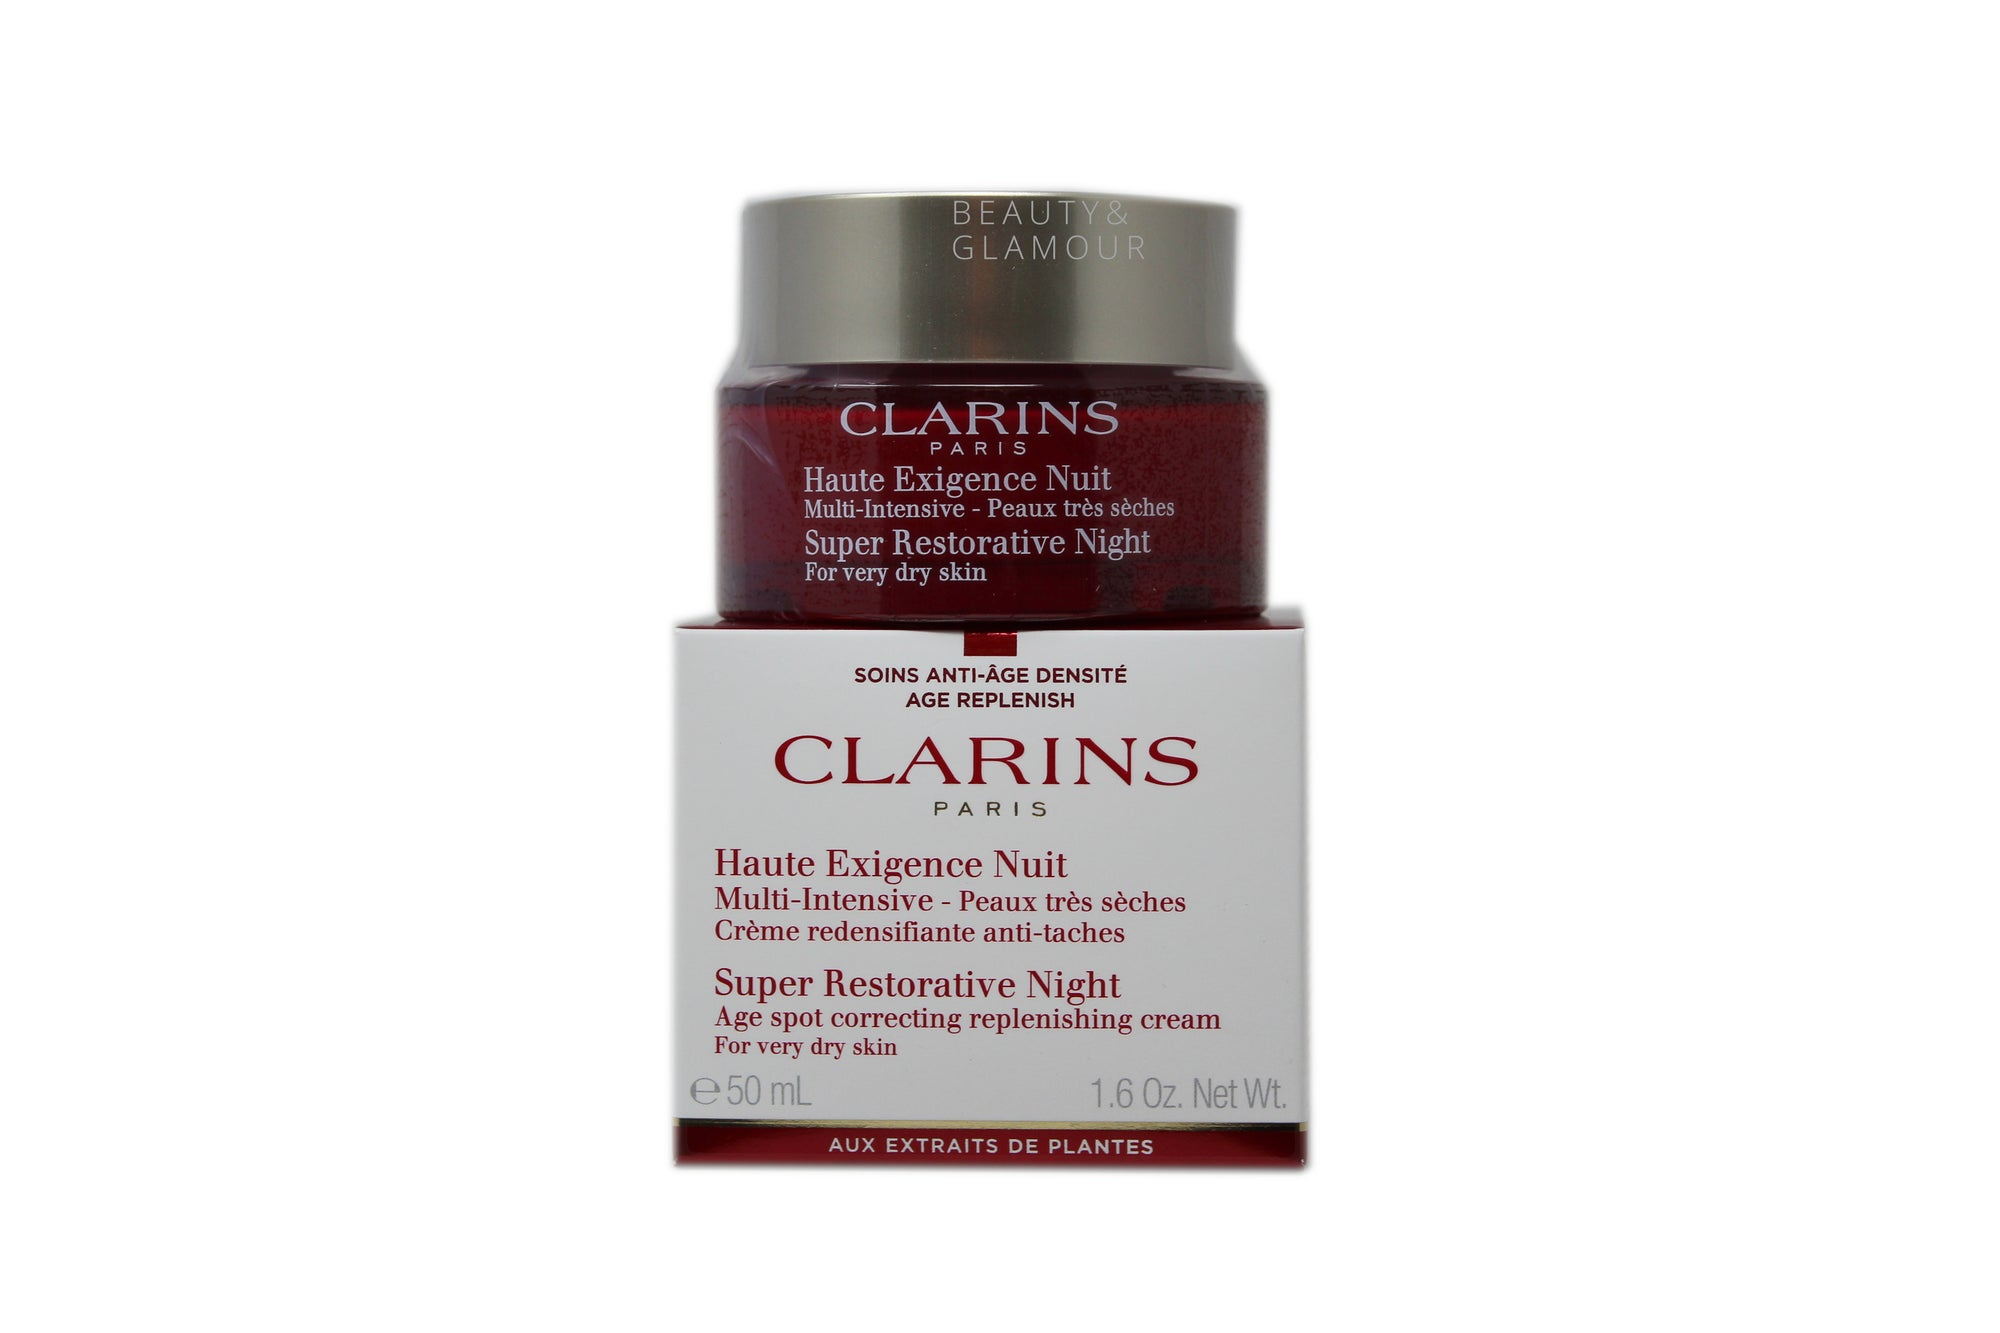 CLARINS SUPER RESTORATIVE NIGHT FOR DRY SKIN 50 ML